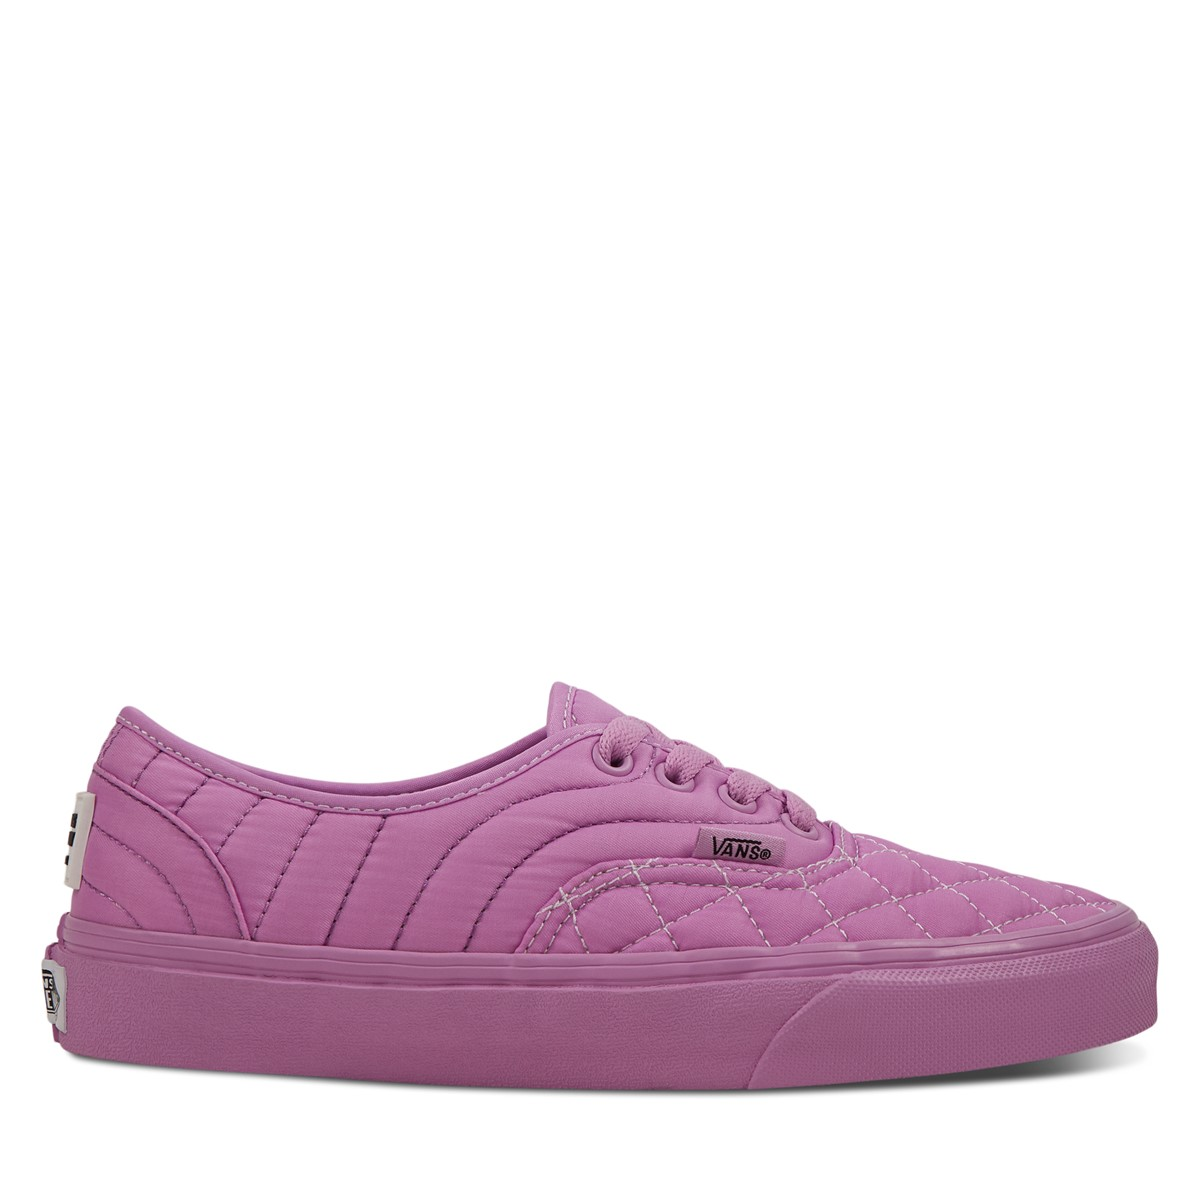 Women's Vans x Opening Ceremony Authentic Sneakers in Pink